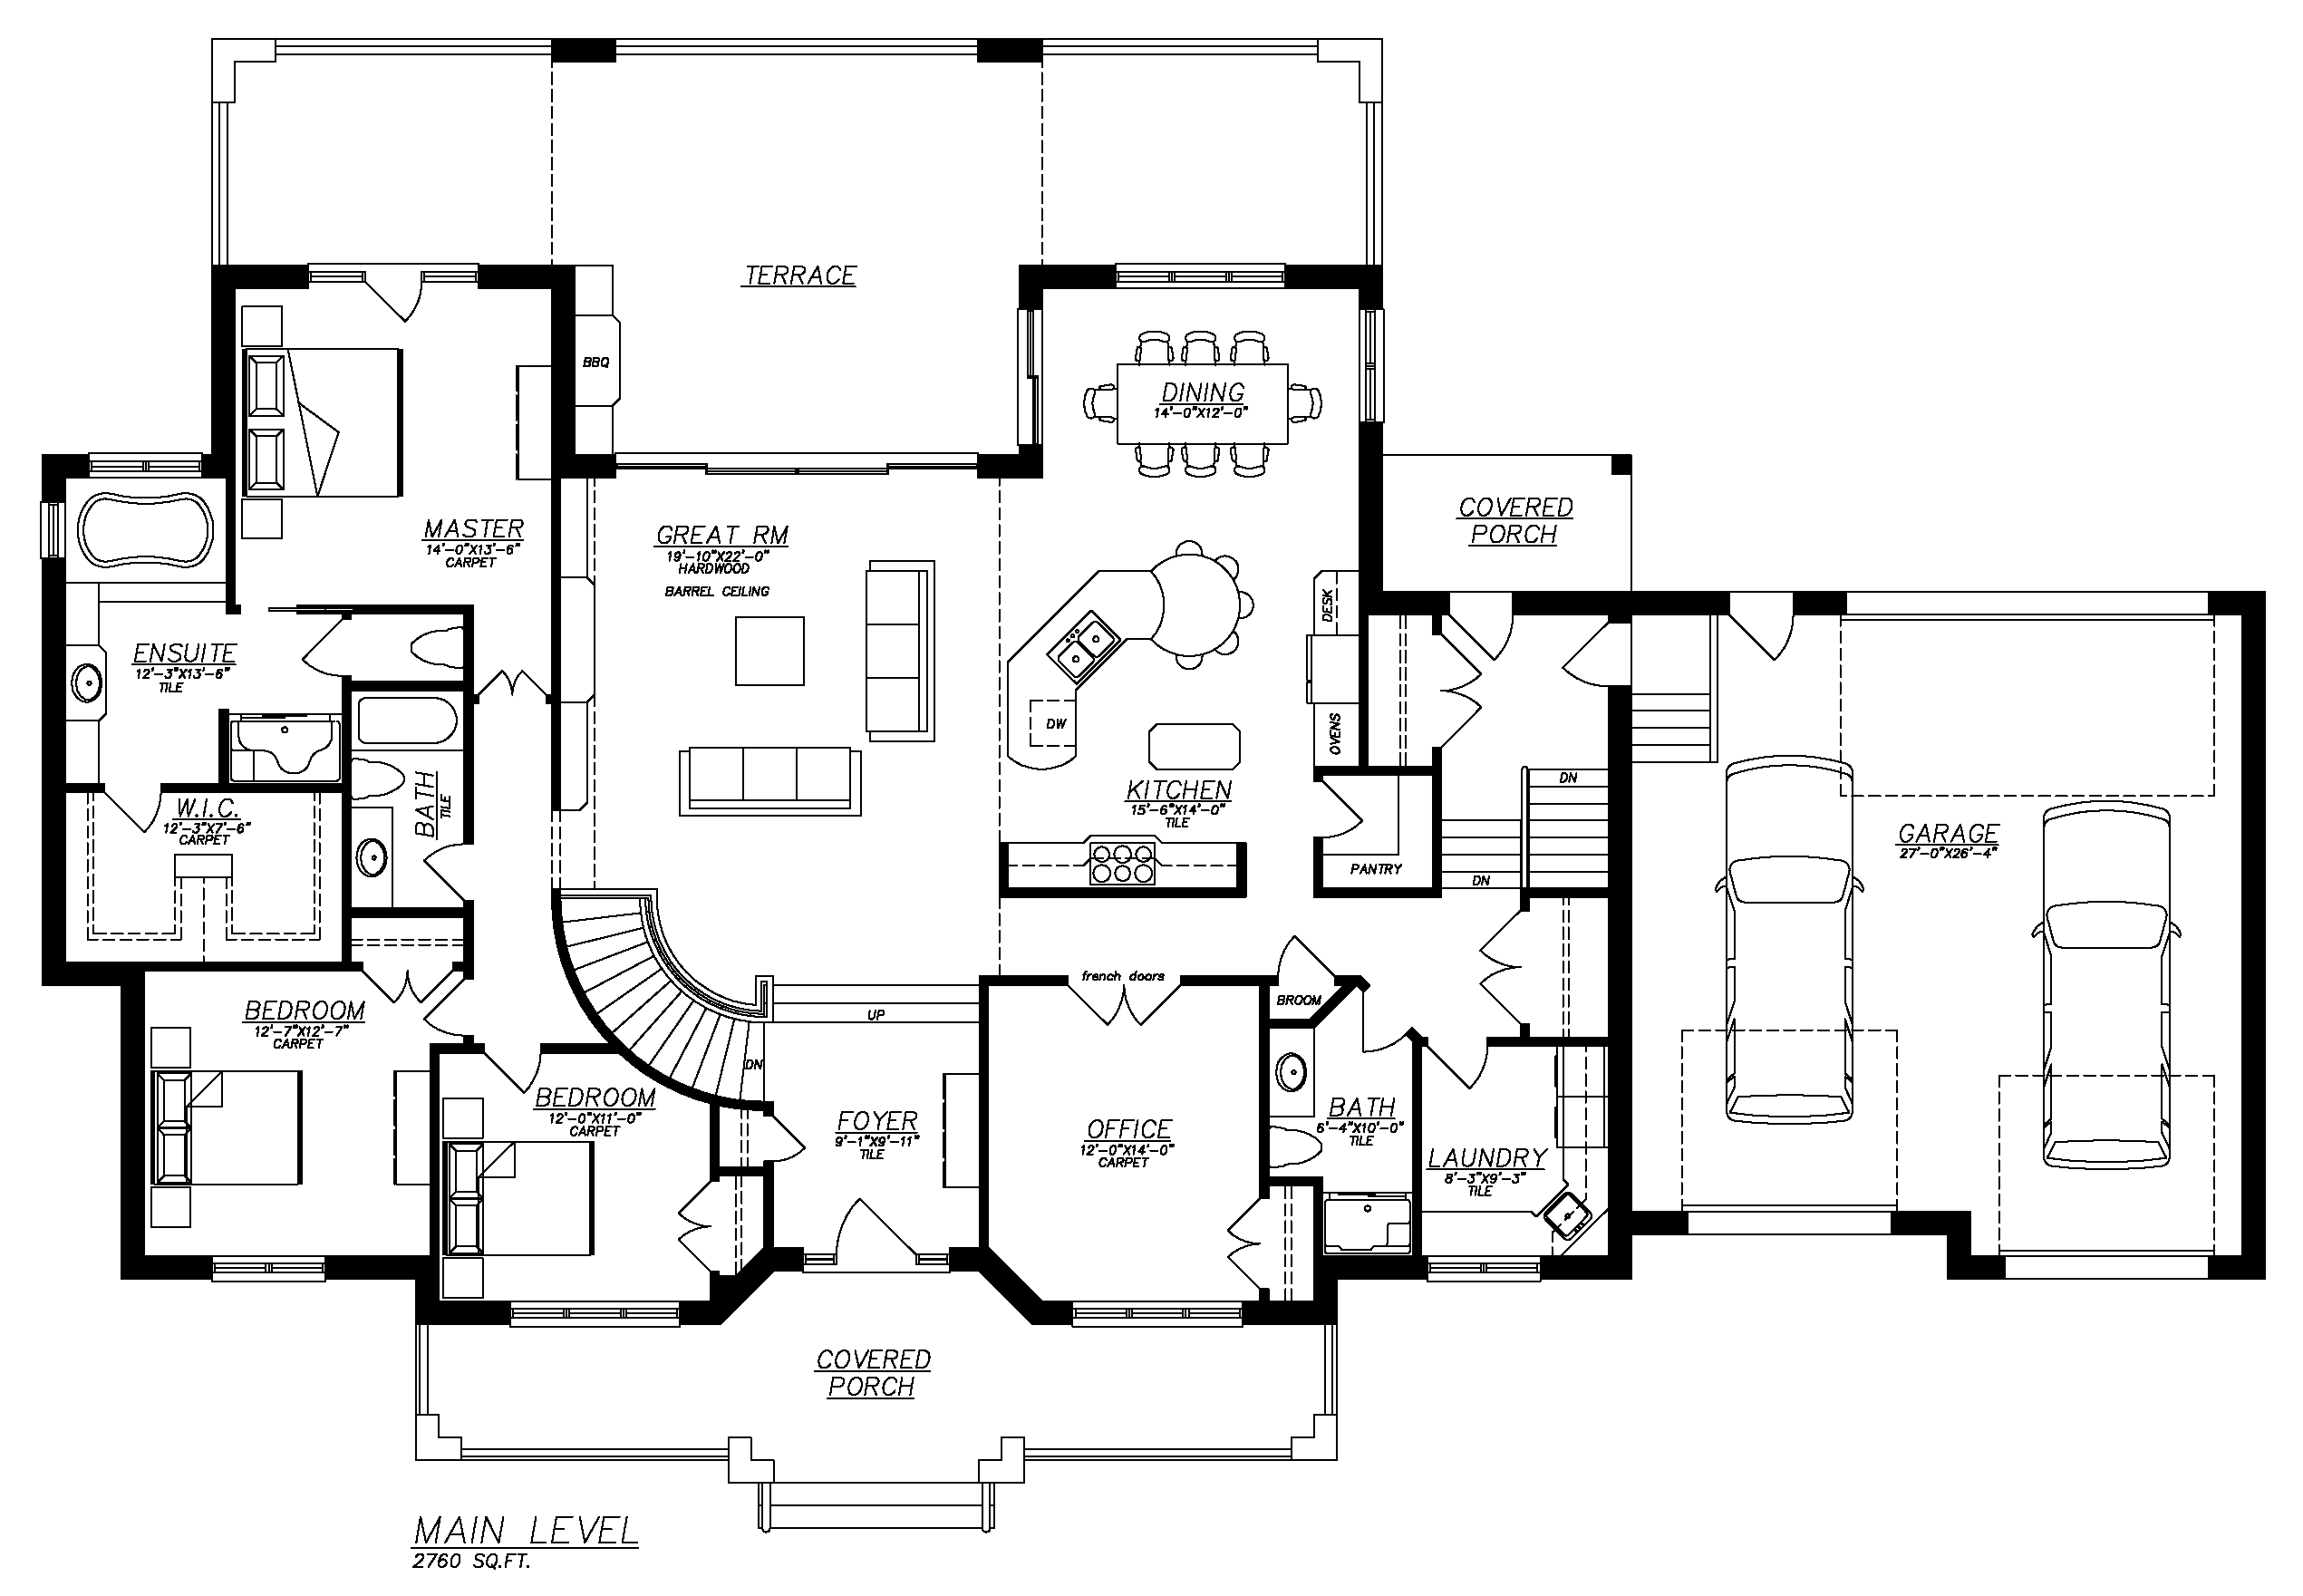 Stinson s gables oke woodsmith building systems inc for One level house plans with basement